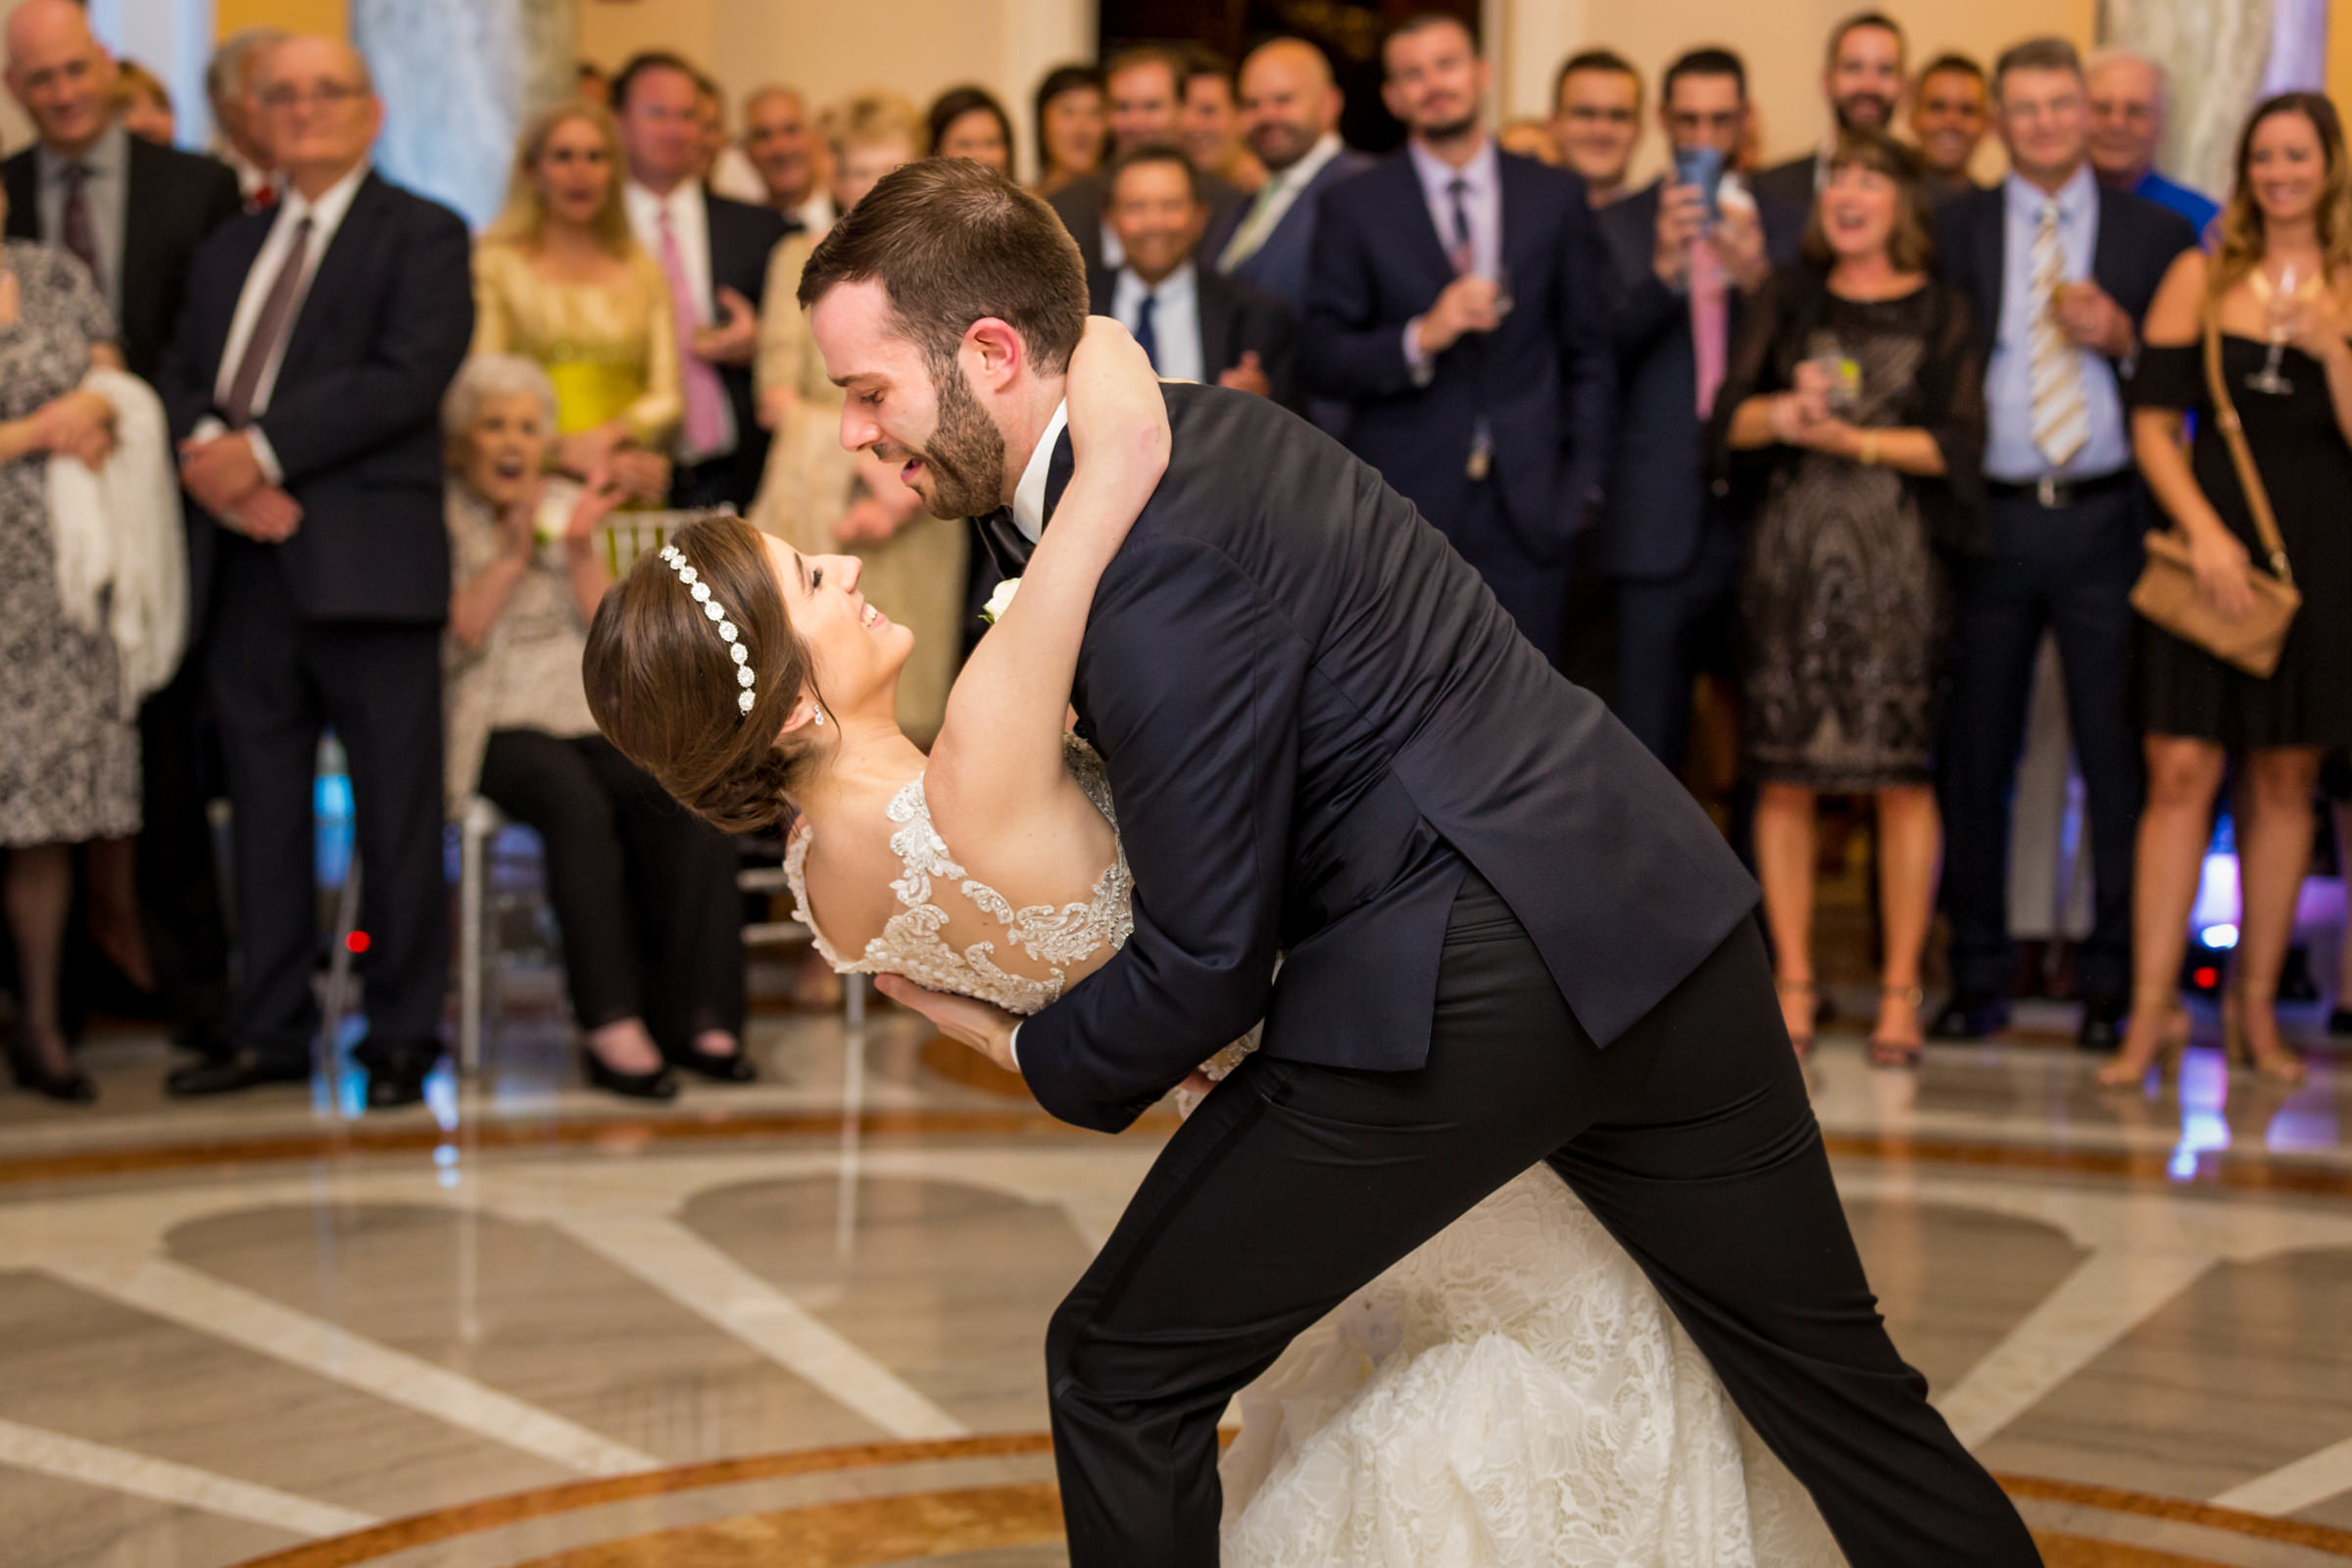 Groom dips bride at first dance - photo by Procopio Photography